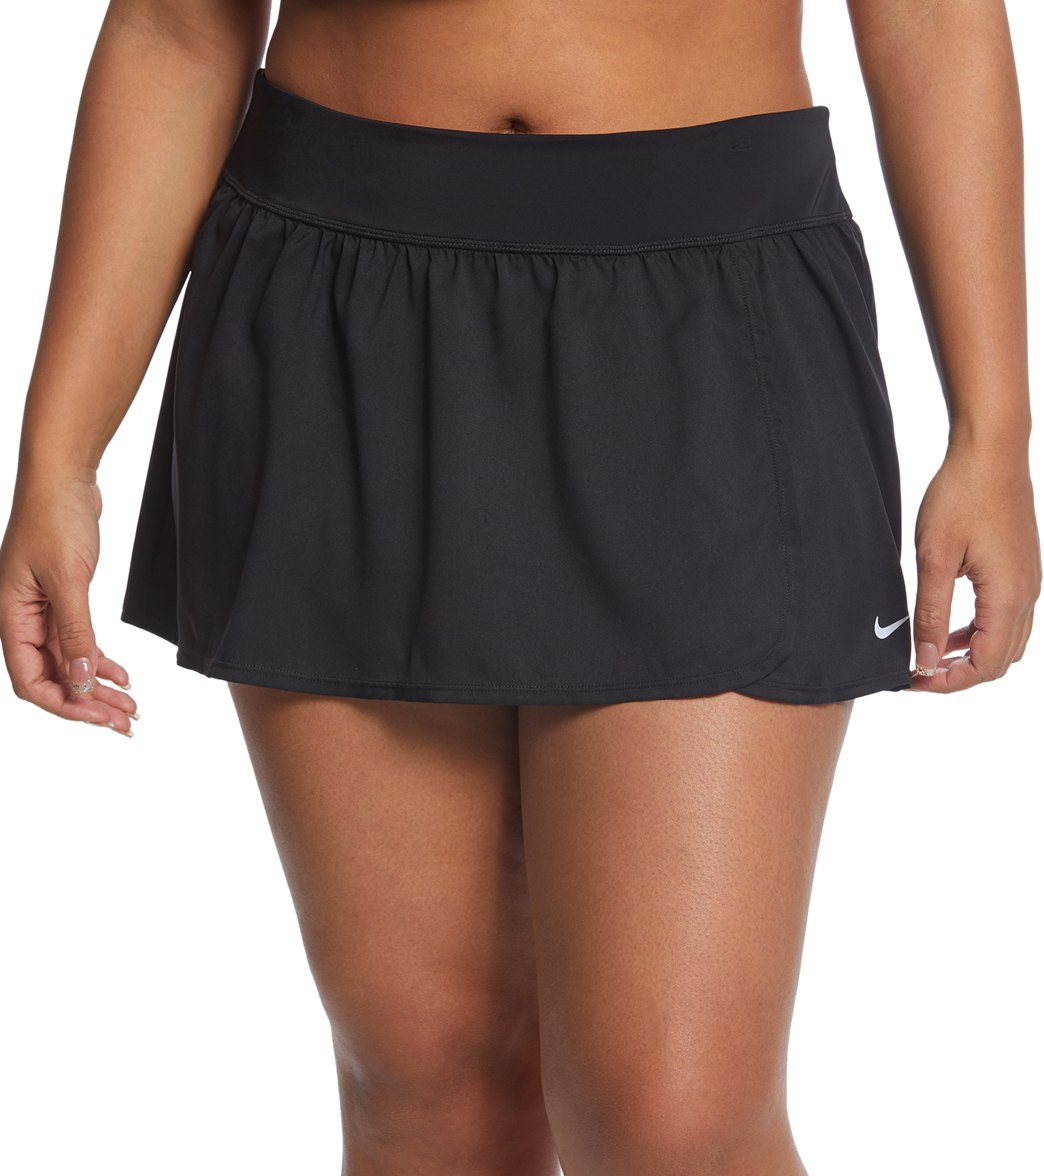 Nike Women s Plus Size Boardskirt Bottom at SwimOutlet.com - Free Shipping 5613e588dfcc